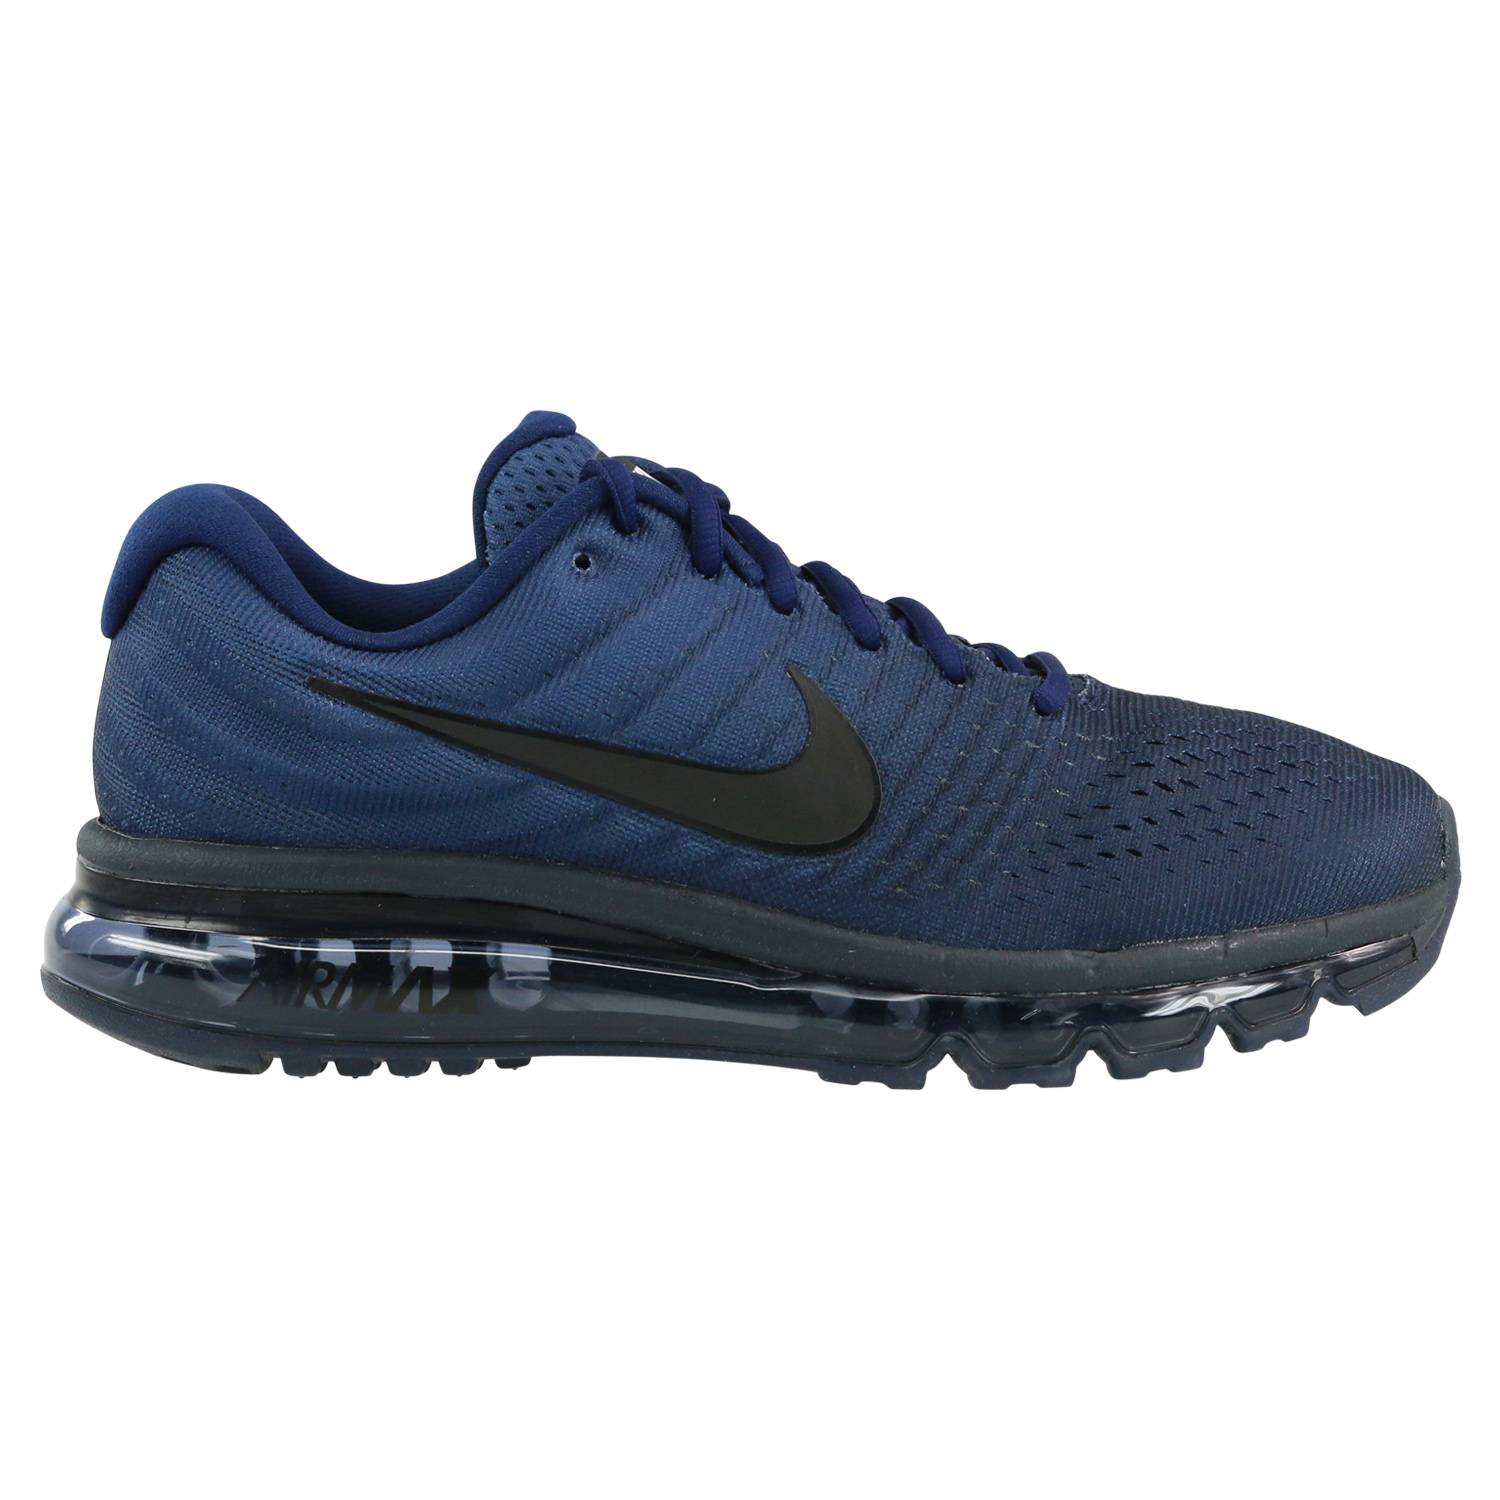 nike air max 2017 schuhe laufschuhe turnschuhe sneaker running herren 849559 ebay. Black Bedroom Furniture Sets. Home Design Ideas